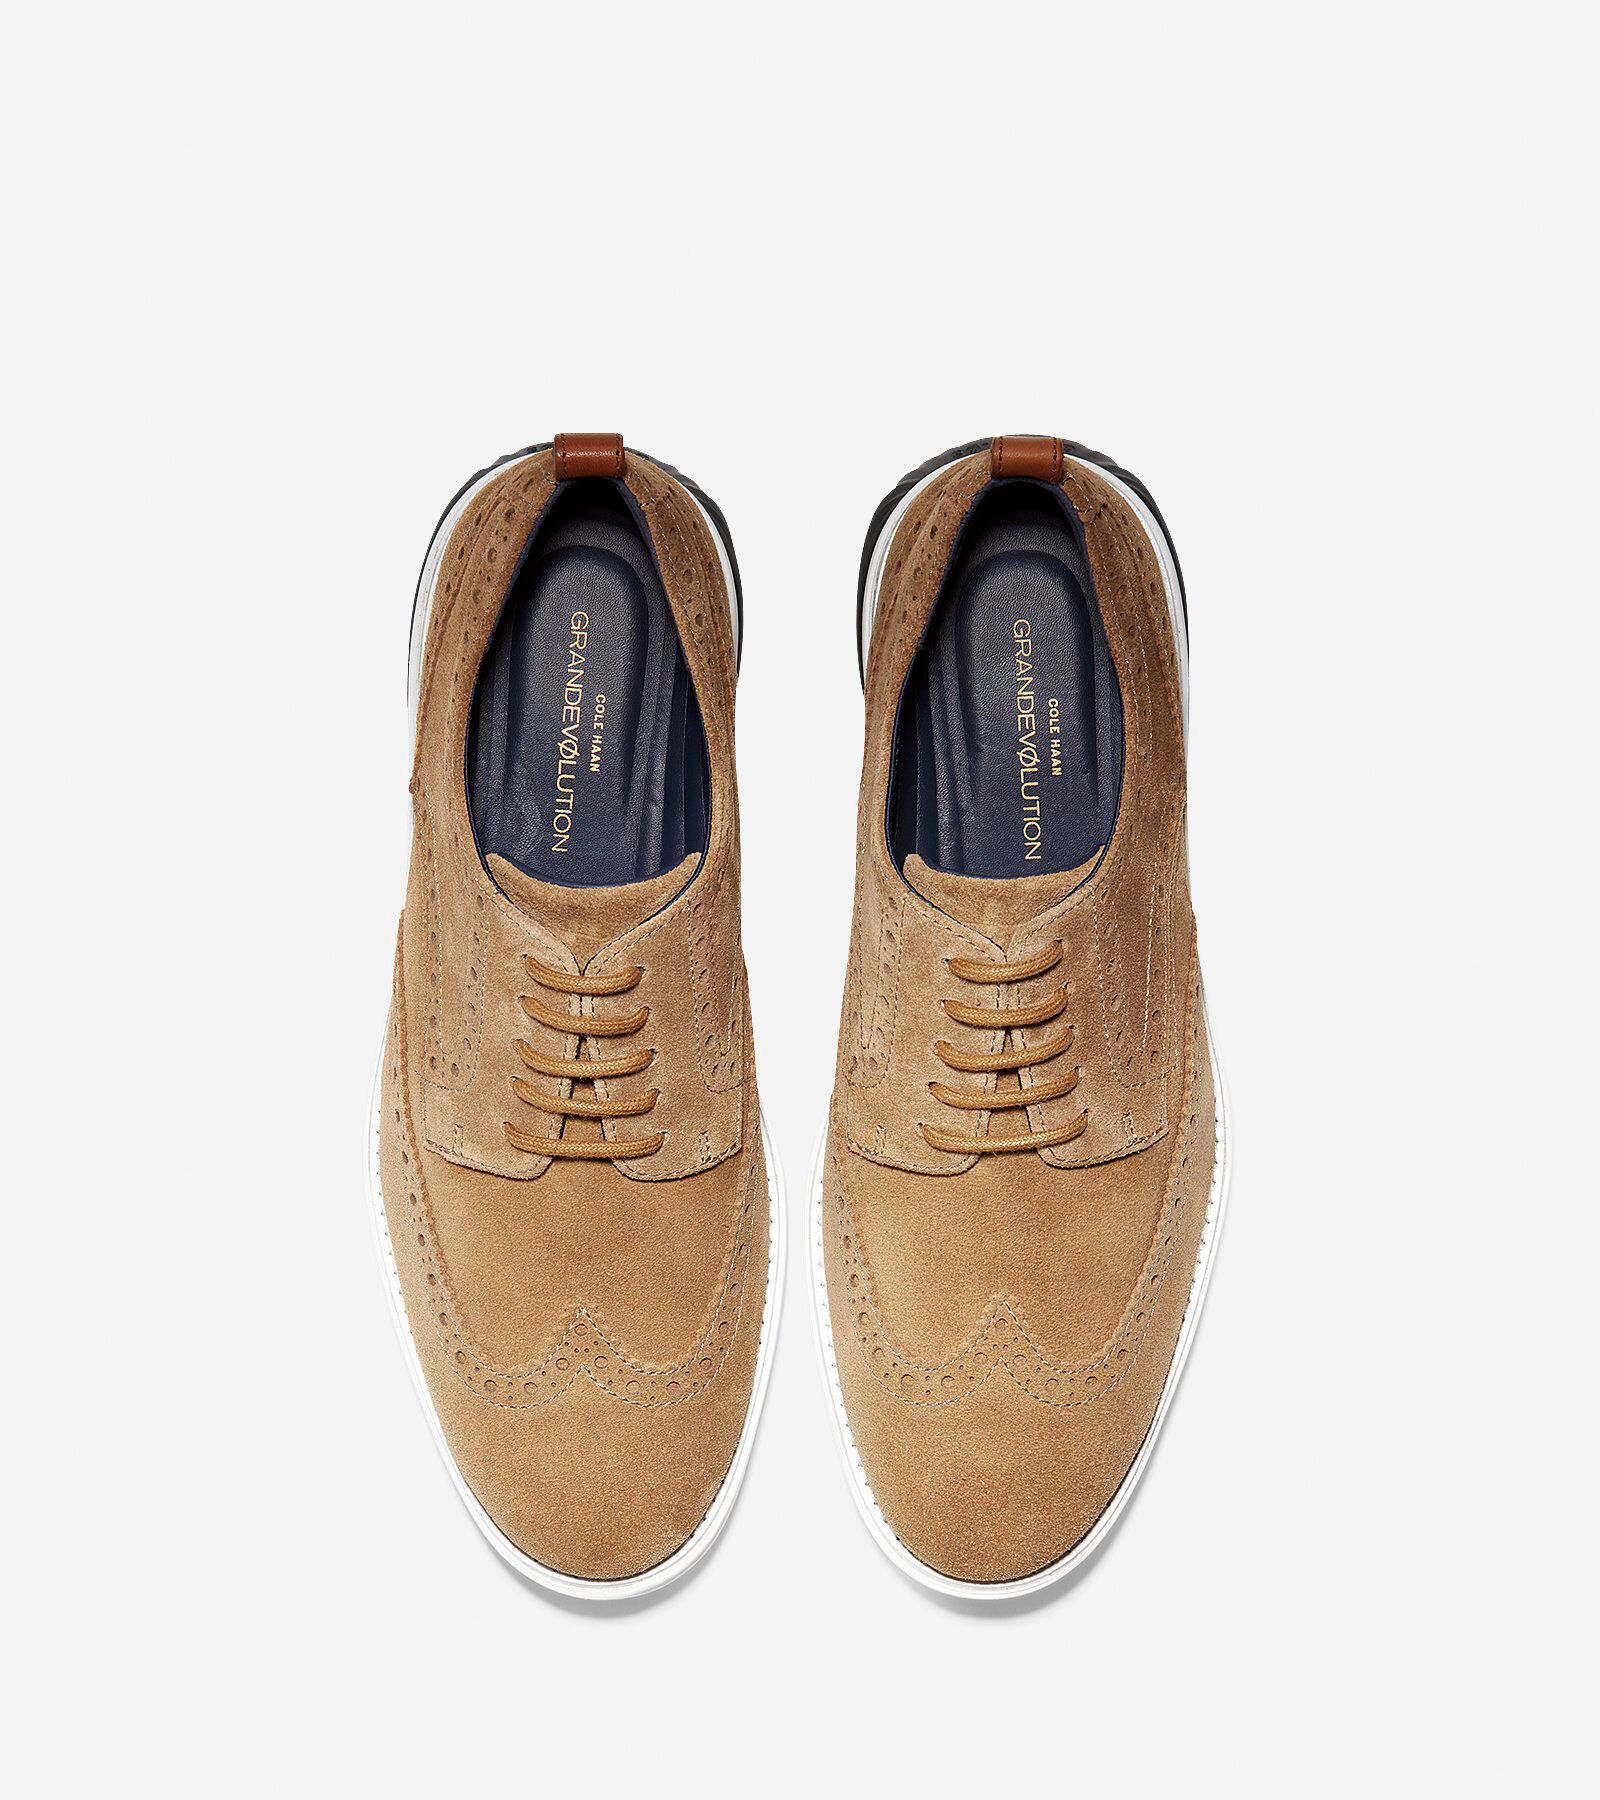 ... Men's GrandEvølution Wingtip Oxford; Men's GrandEvølution Wingtip  Oxford; Men's GrandEvølution Wingtip Oxford. #colehaan